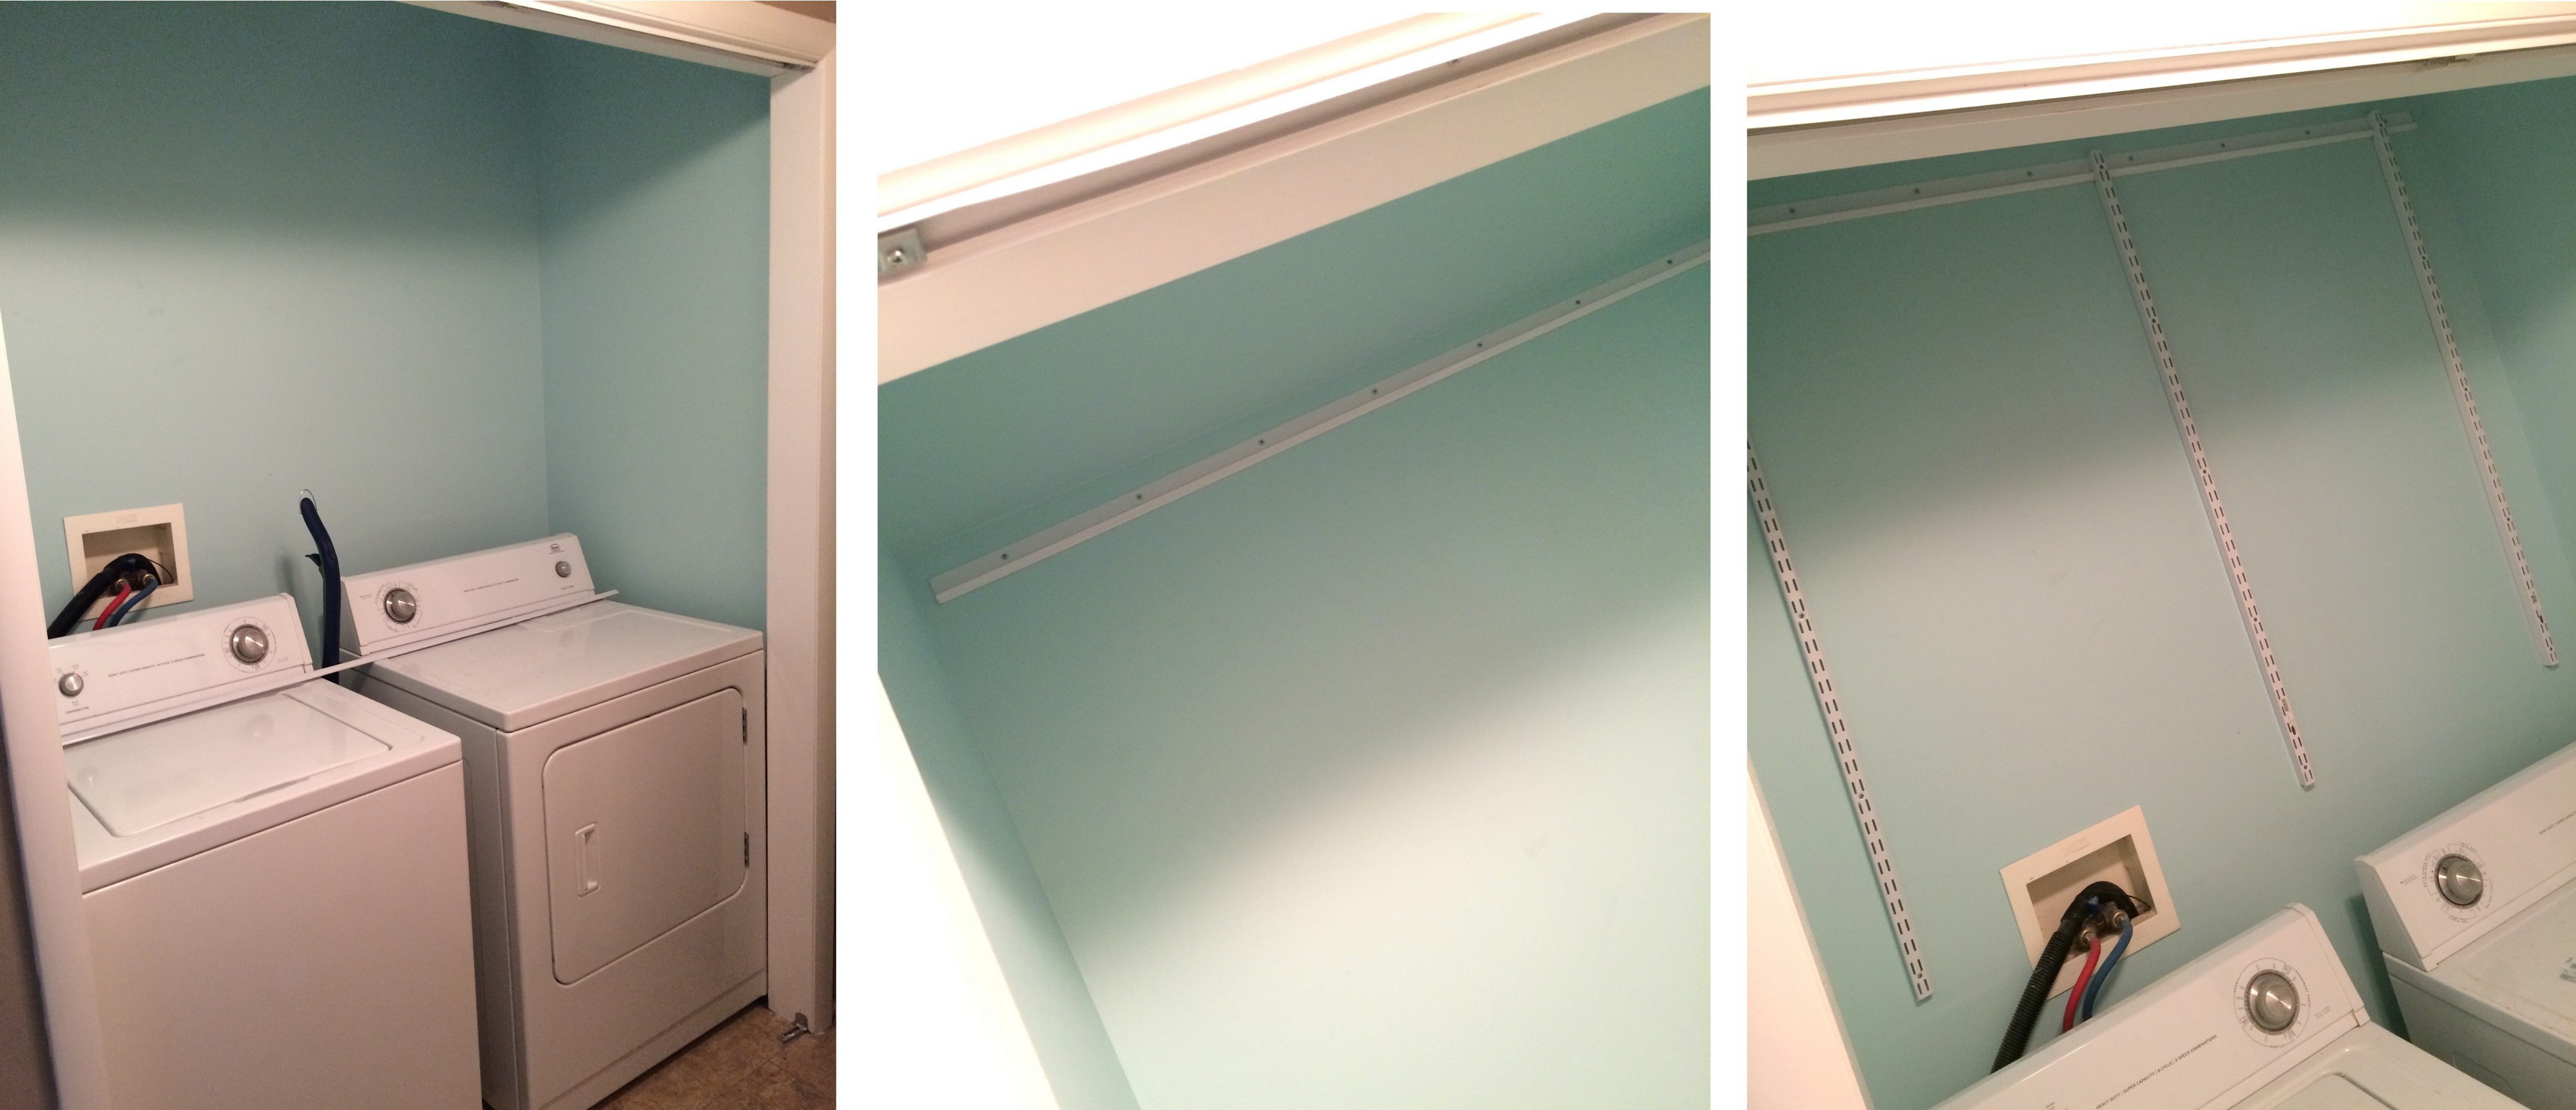 Laundry Room Ideas Small Floating Shelves